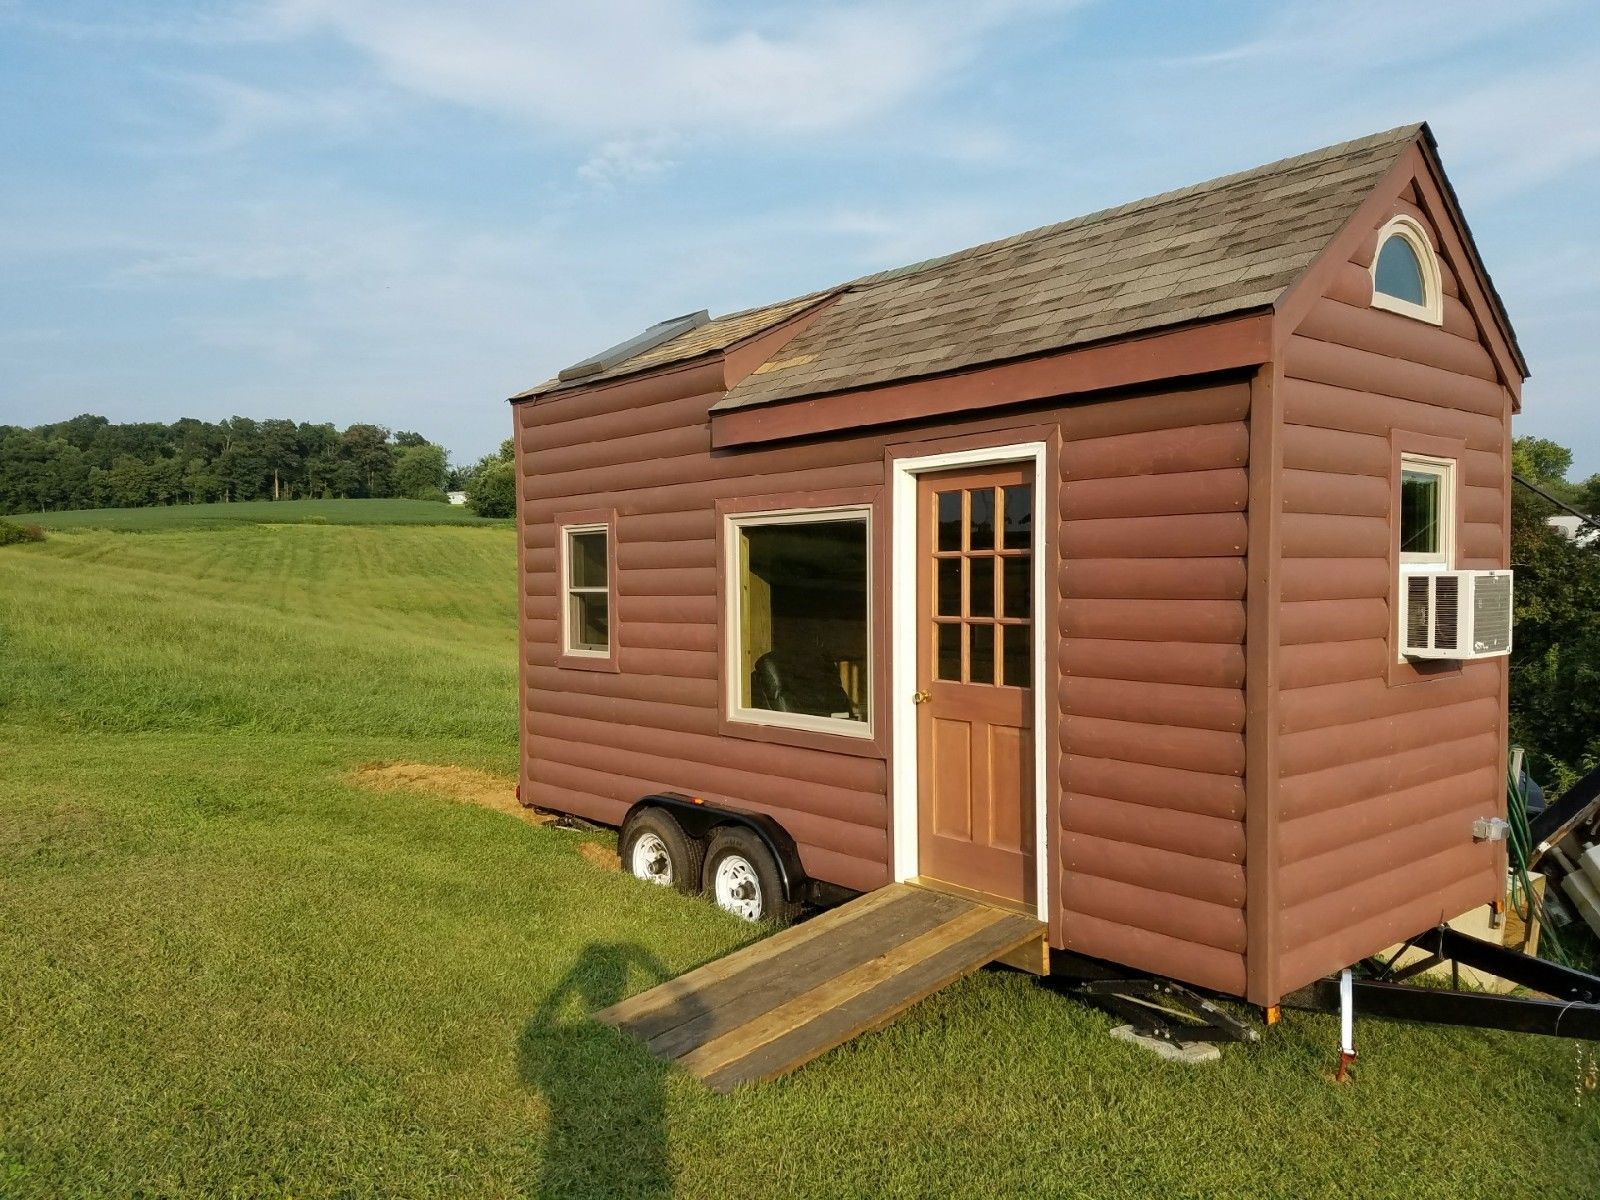 Super 10 Tiny Houses On Wheels Portable Homes And Trailers Download Free Architecture Designs Sospemadebymaigaardcom